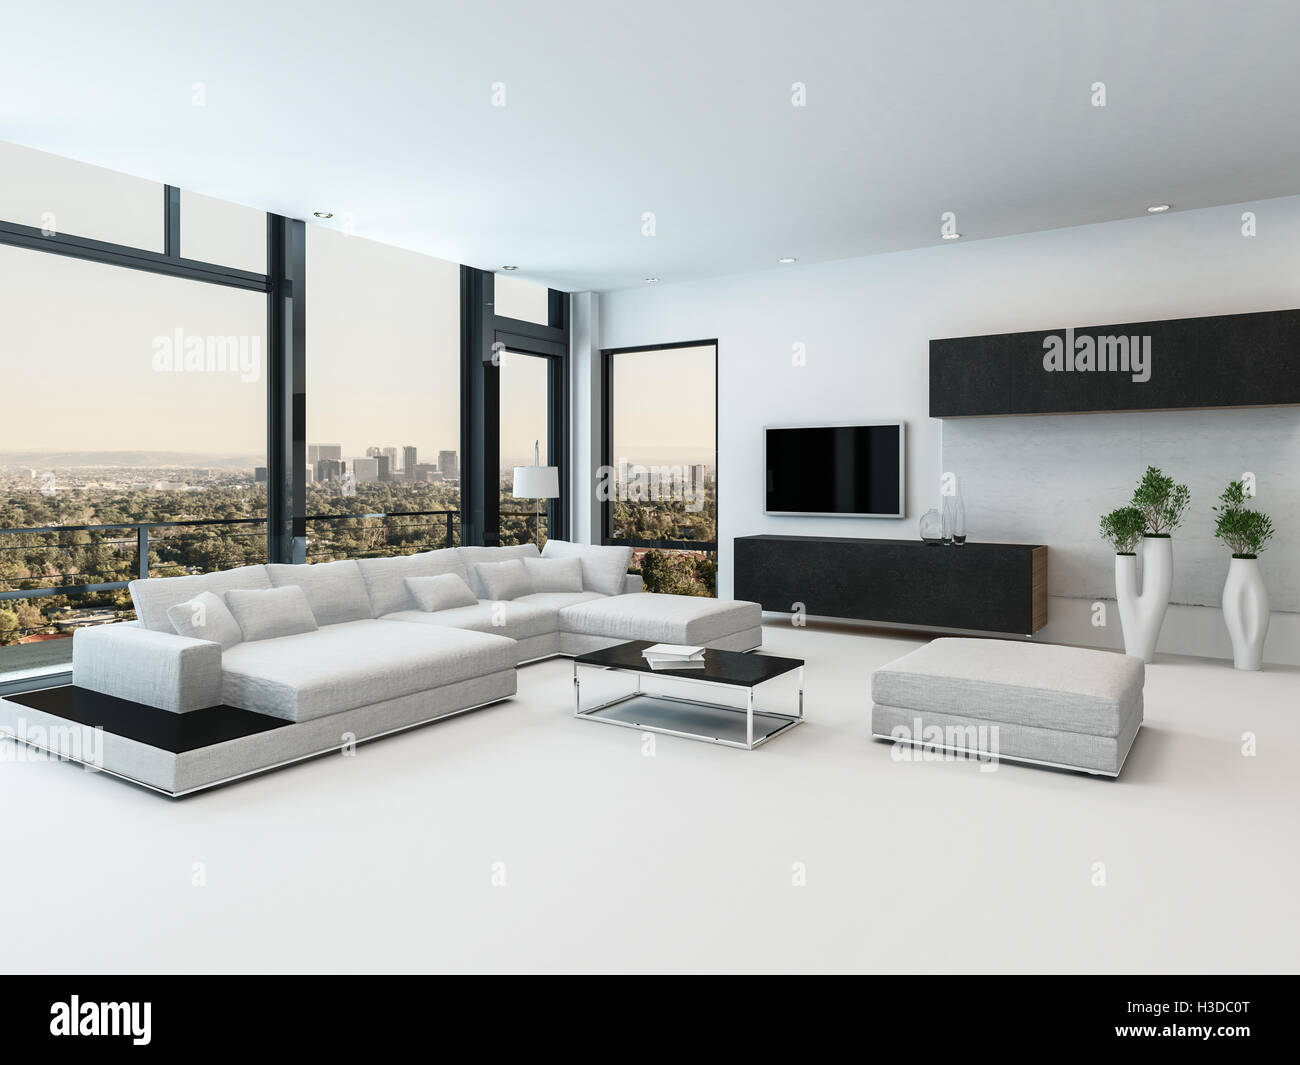 Stylish Modern Black And White Living Room Interior With A Stock Photo Alamy